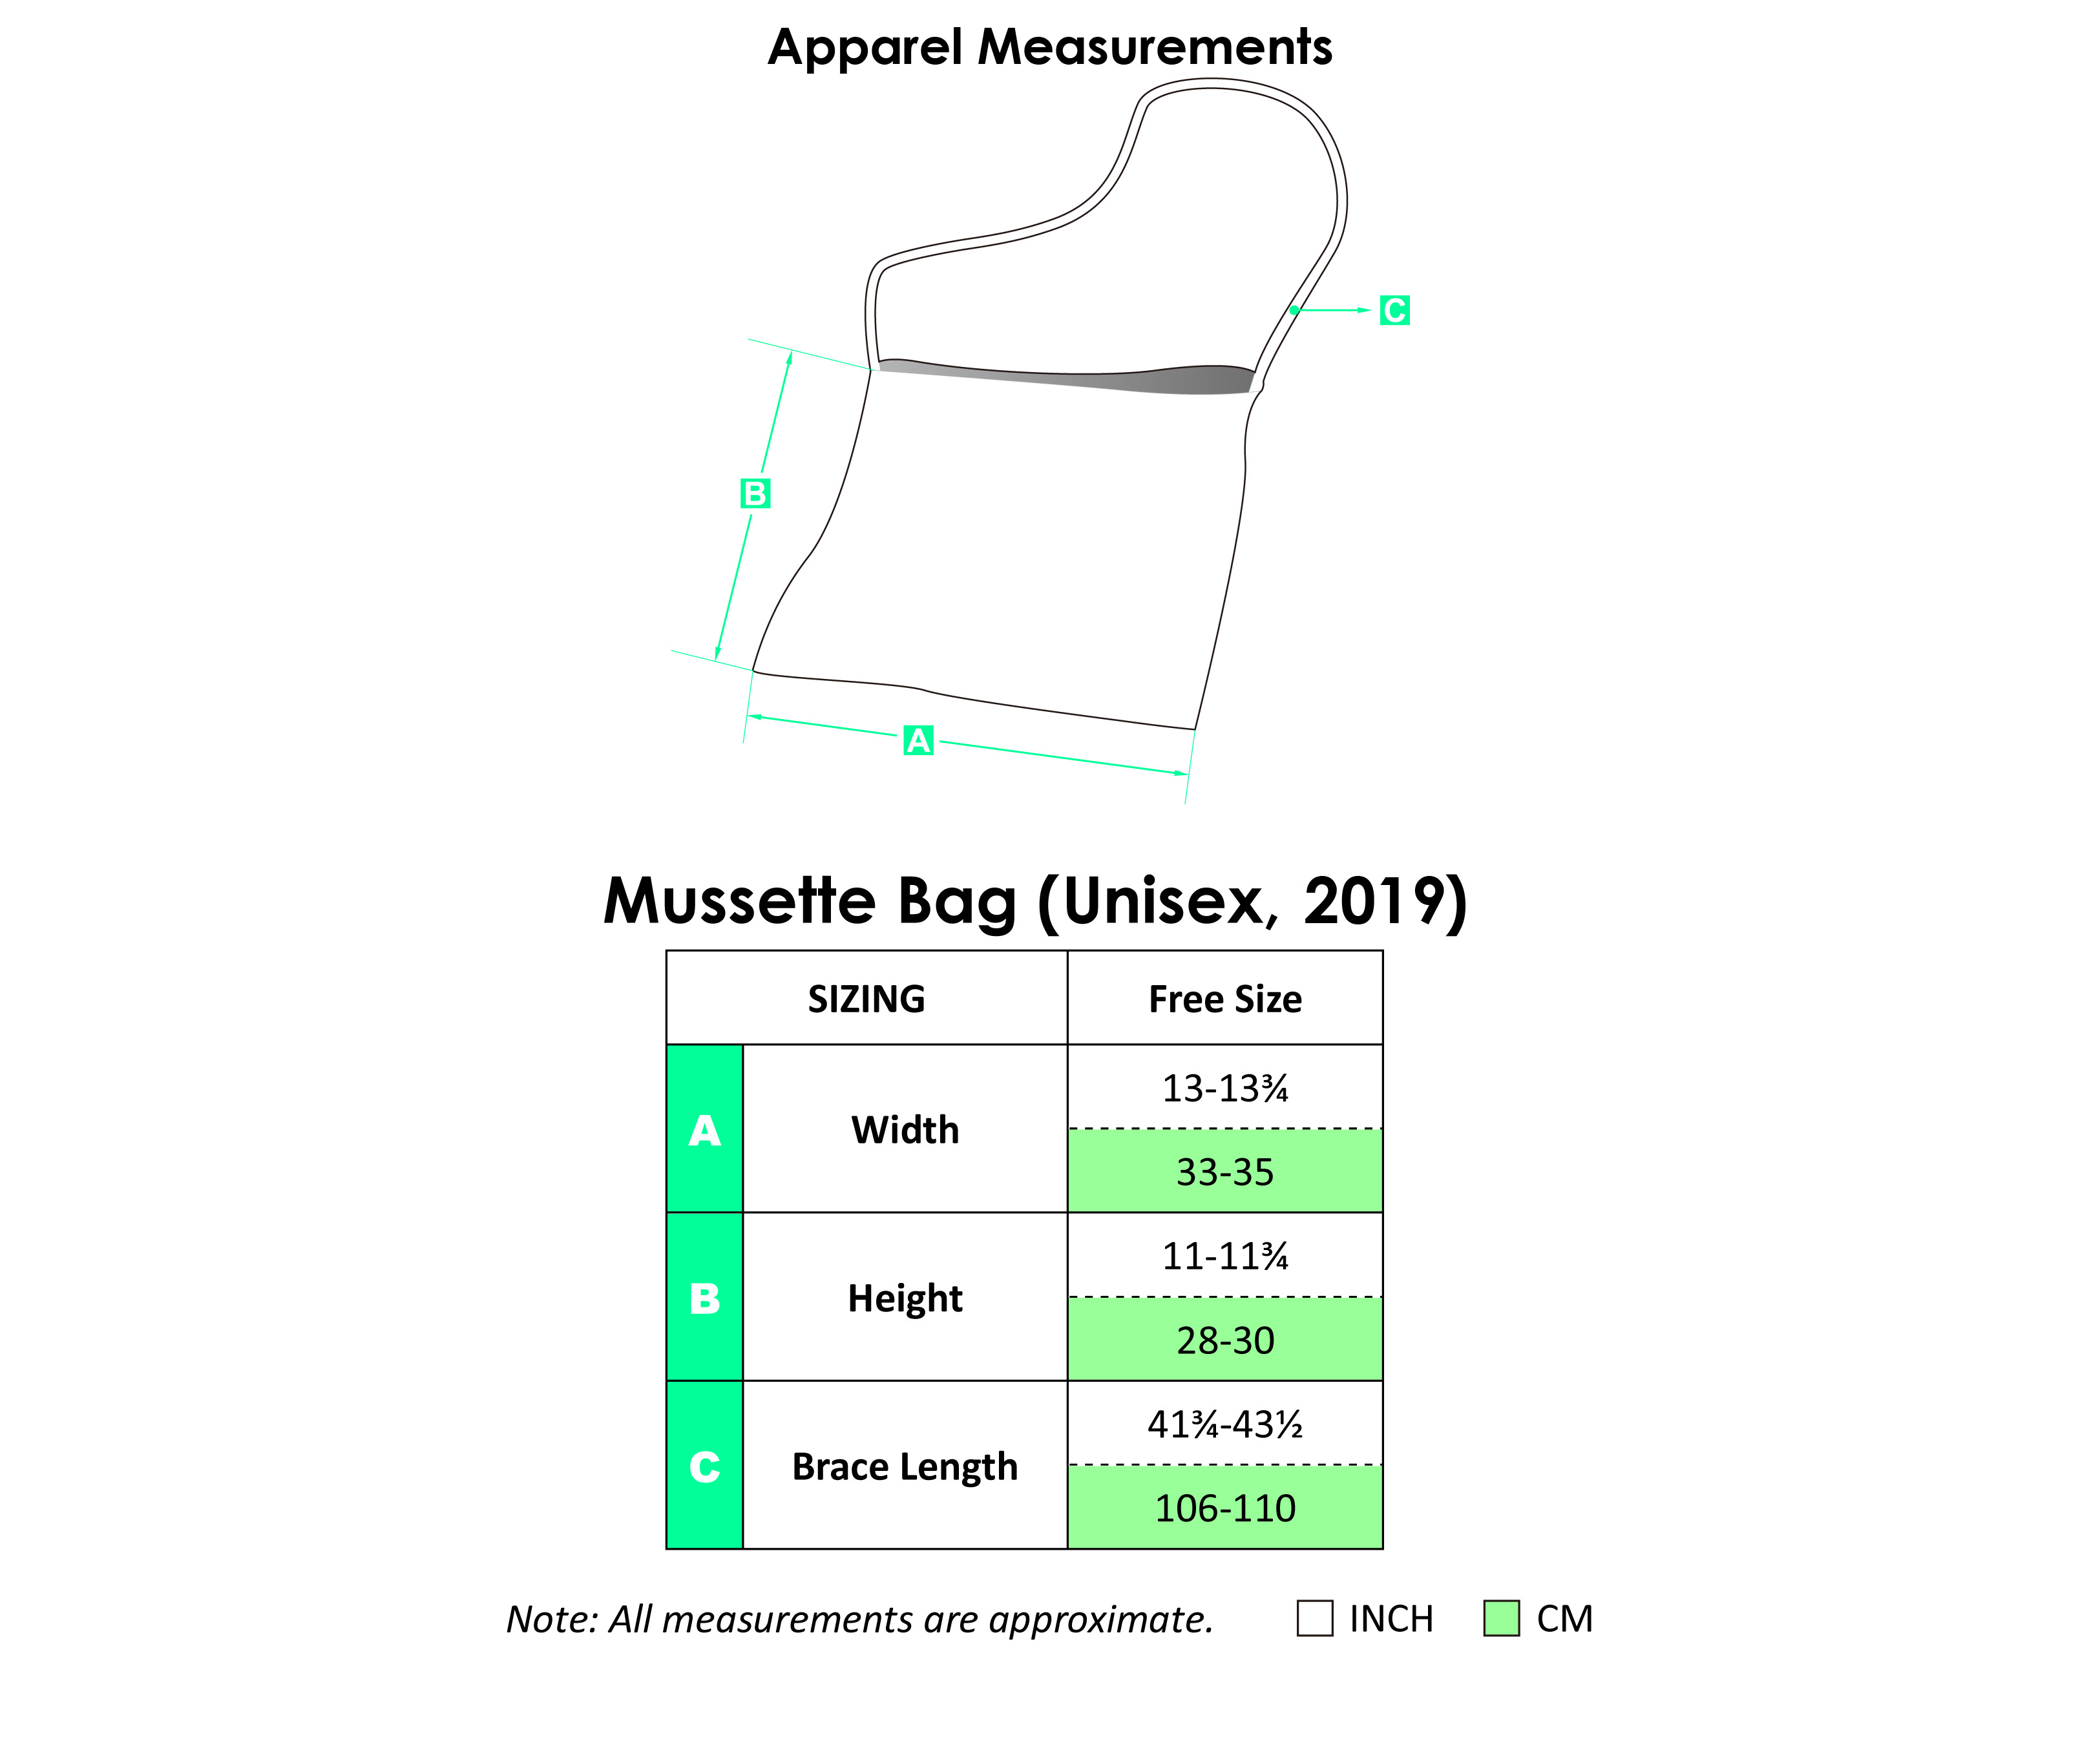 Mussette Bag Apparel Size Chart